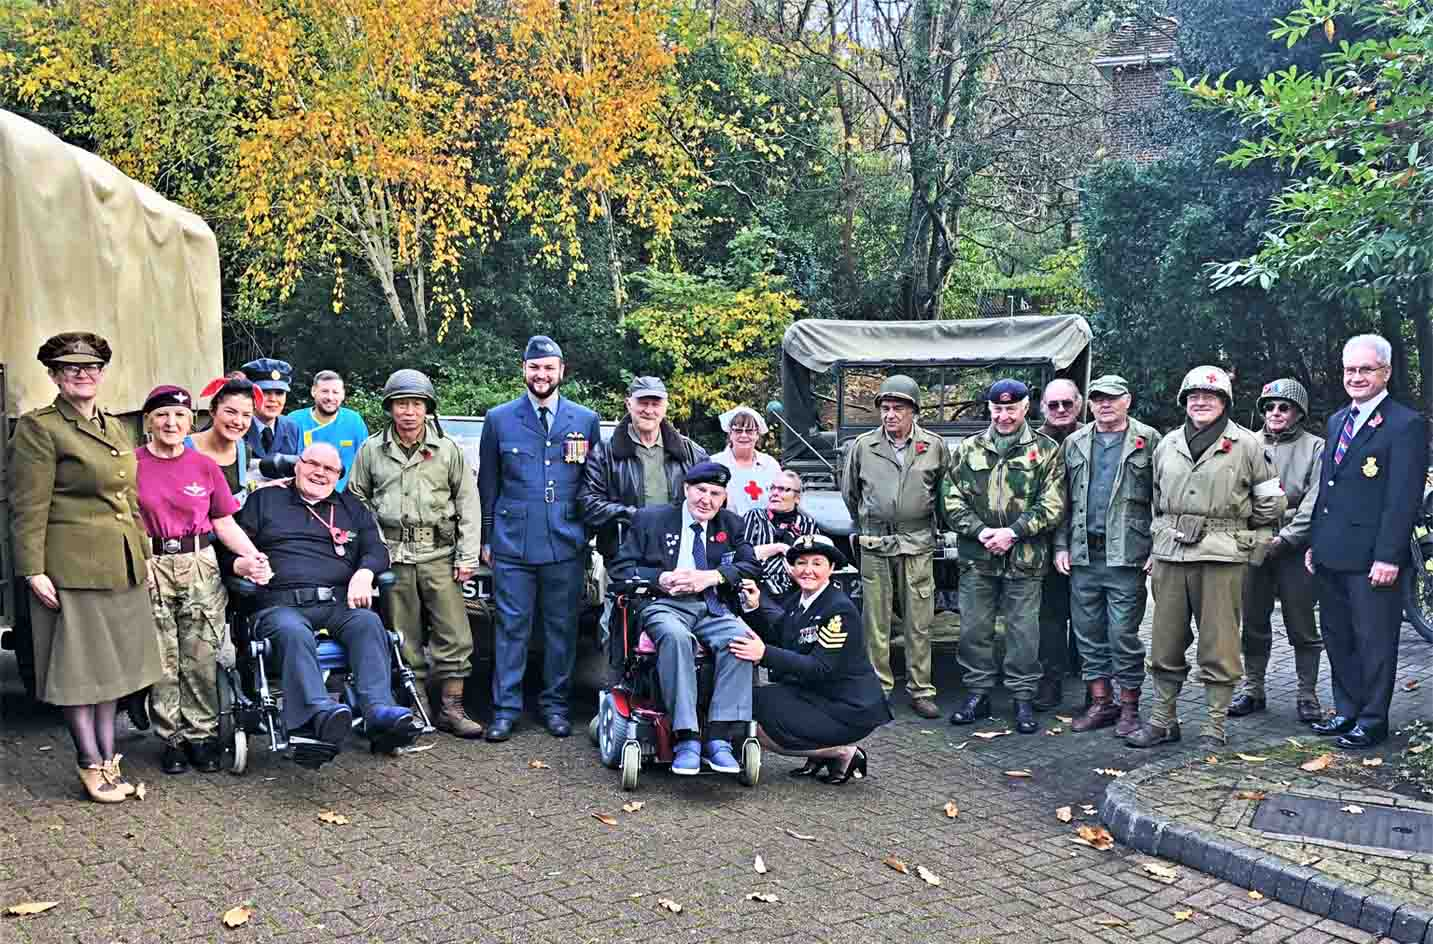 Meyrick Rise throw a Veterans Day Party